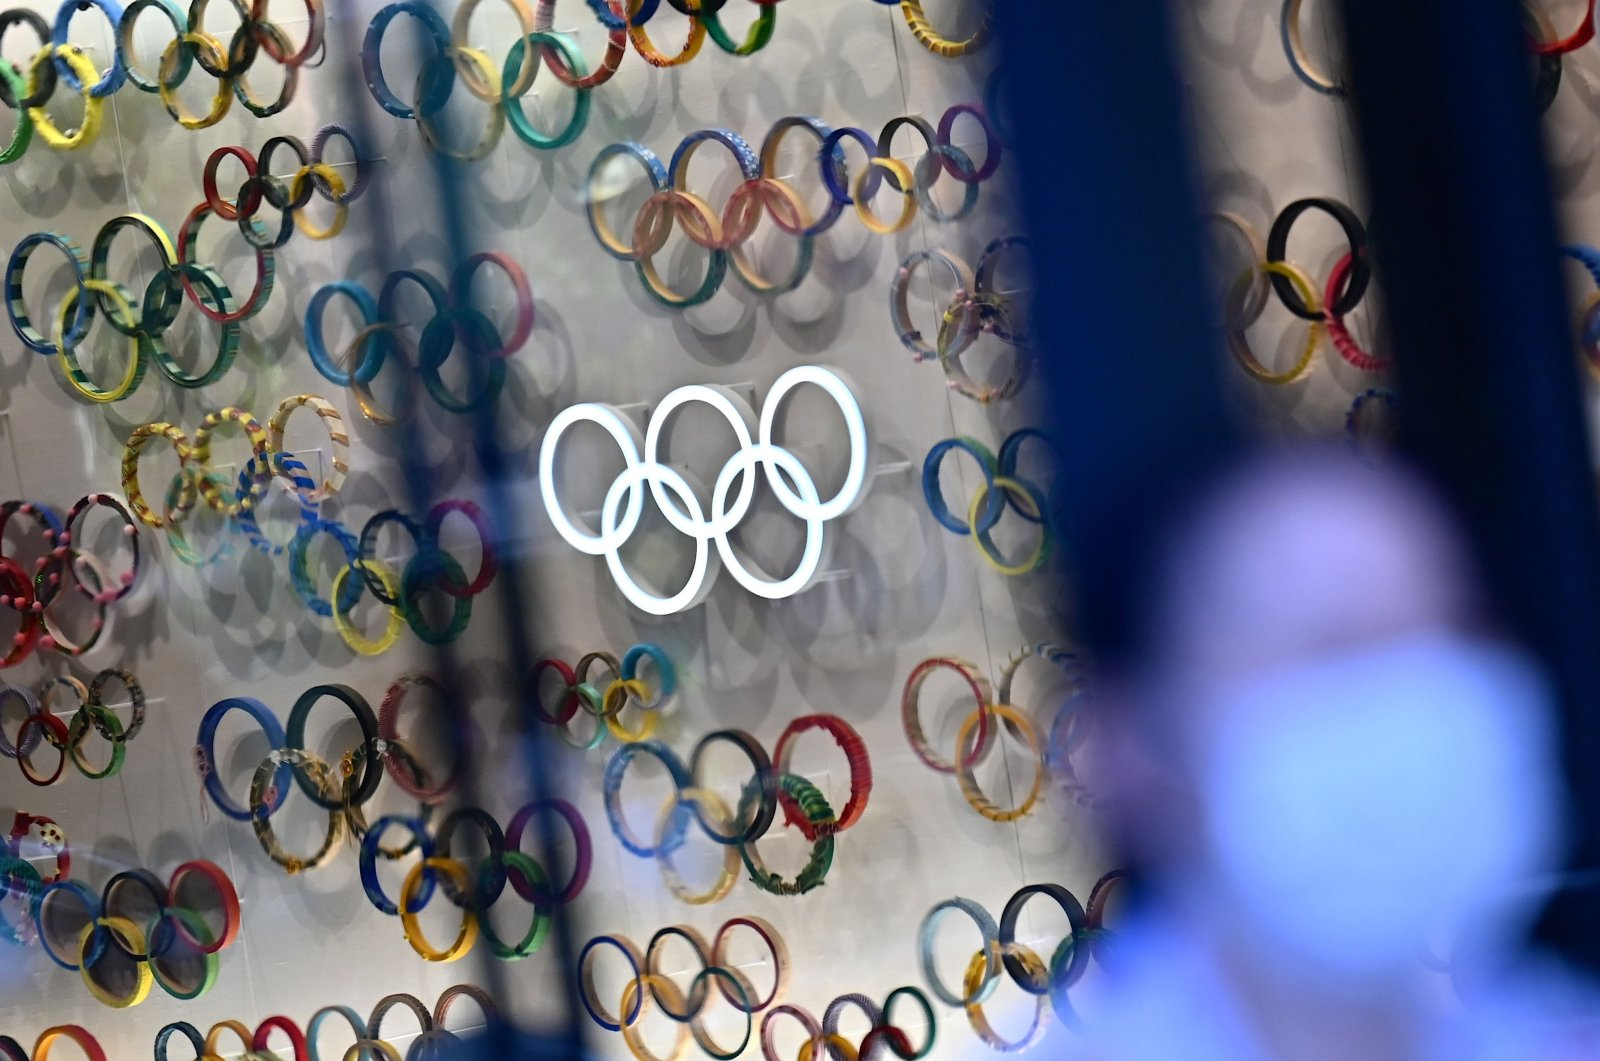 A display of the Olympic rings in the Olympic museum is seen in Tokyo, Japan, Oct. 20, 2020. (Photo by CHARLY TRIBALLEAU / AFP)